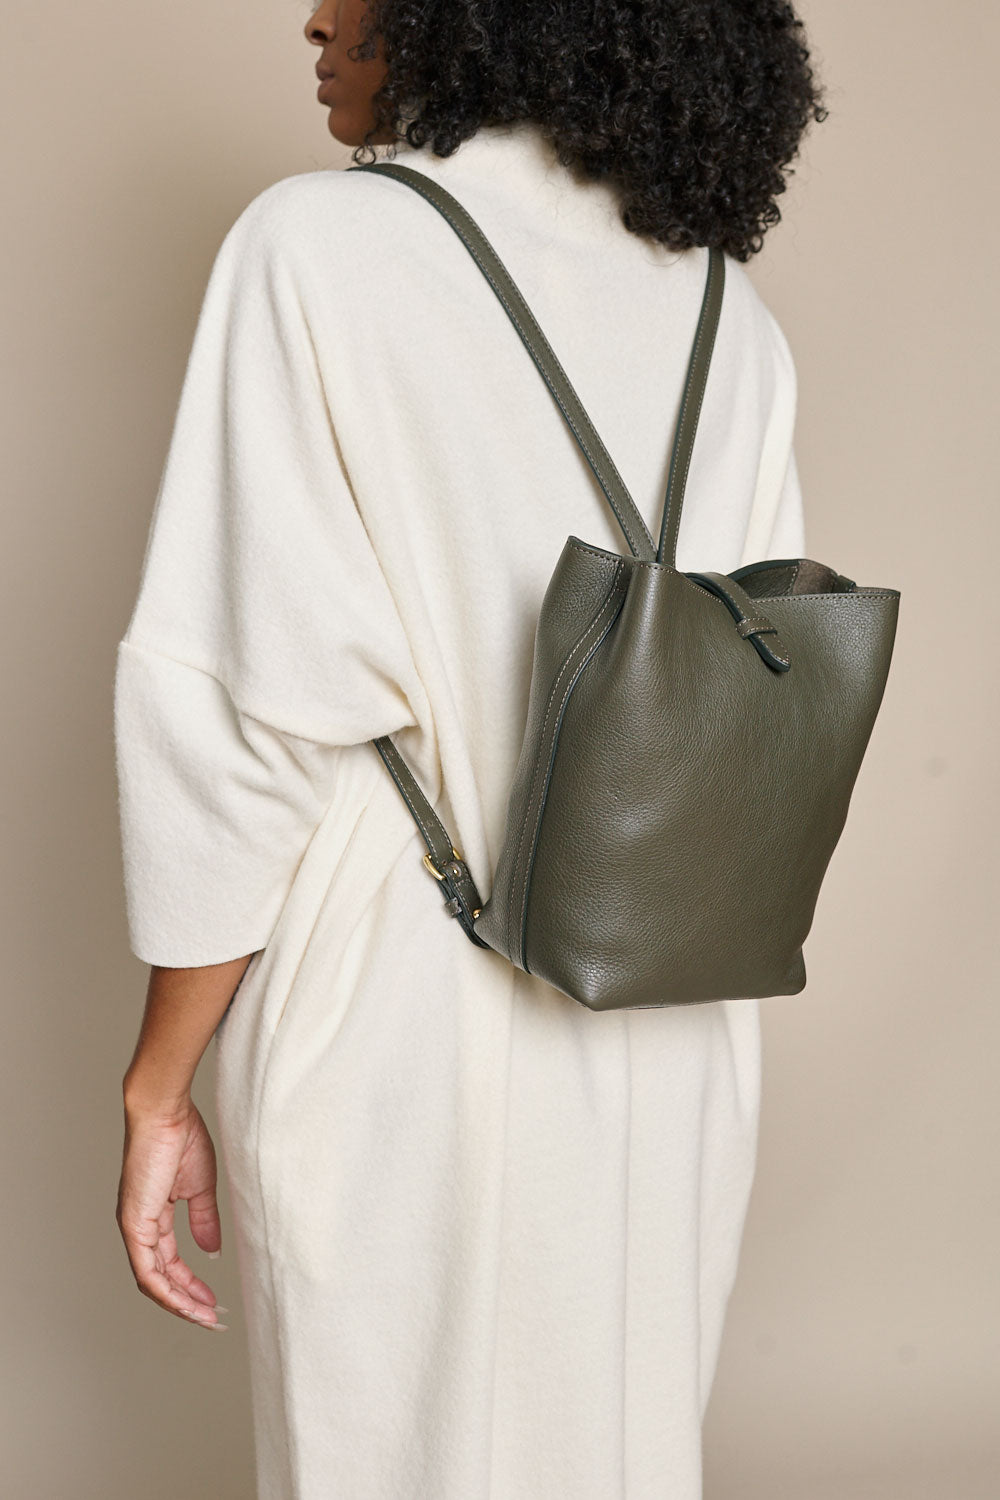 The Mini Sling Bag in Olive